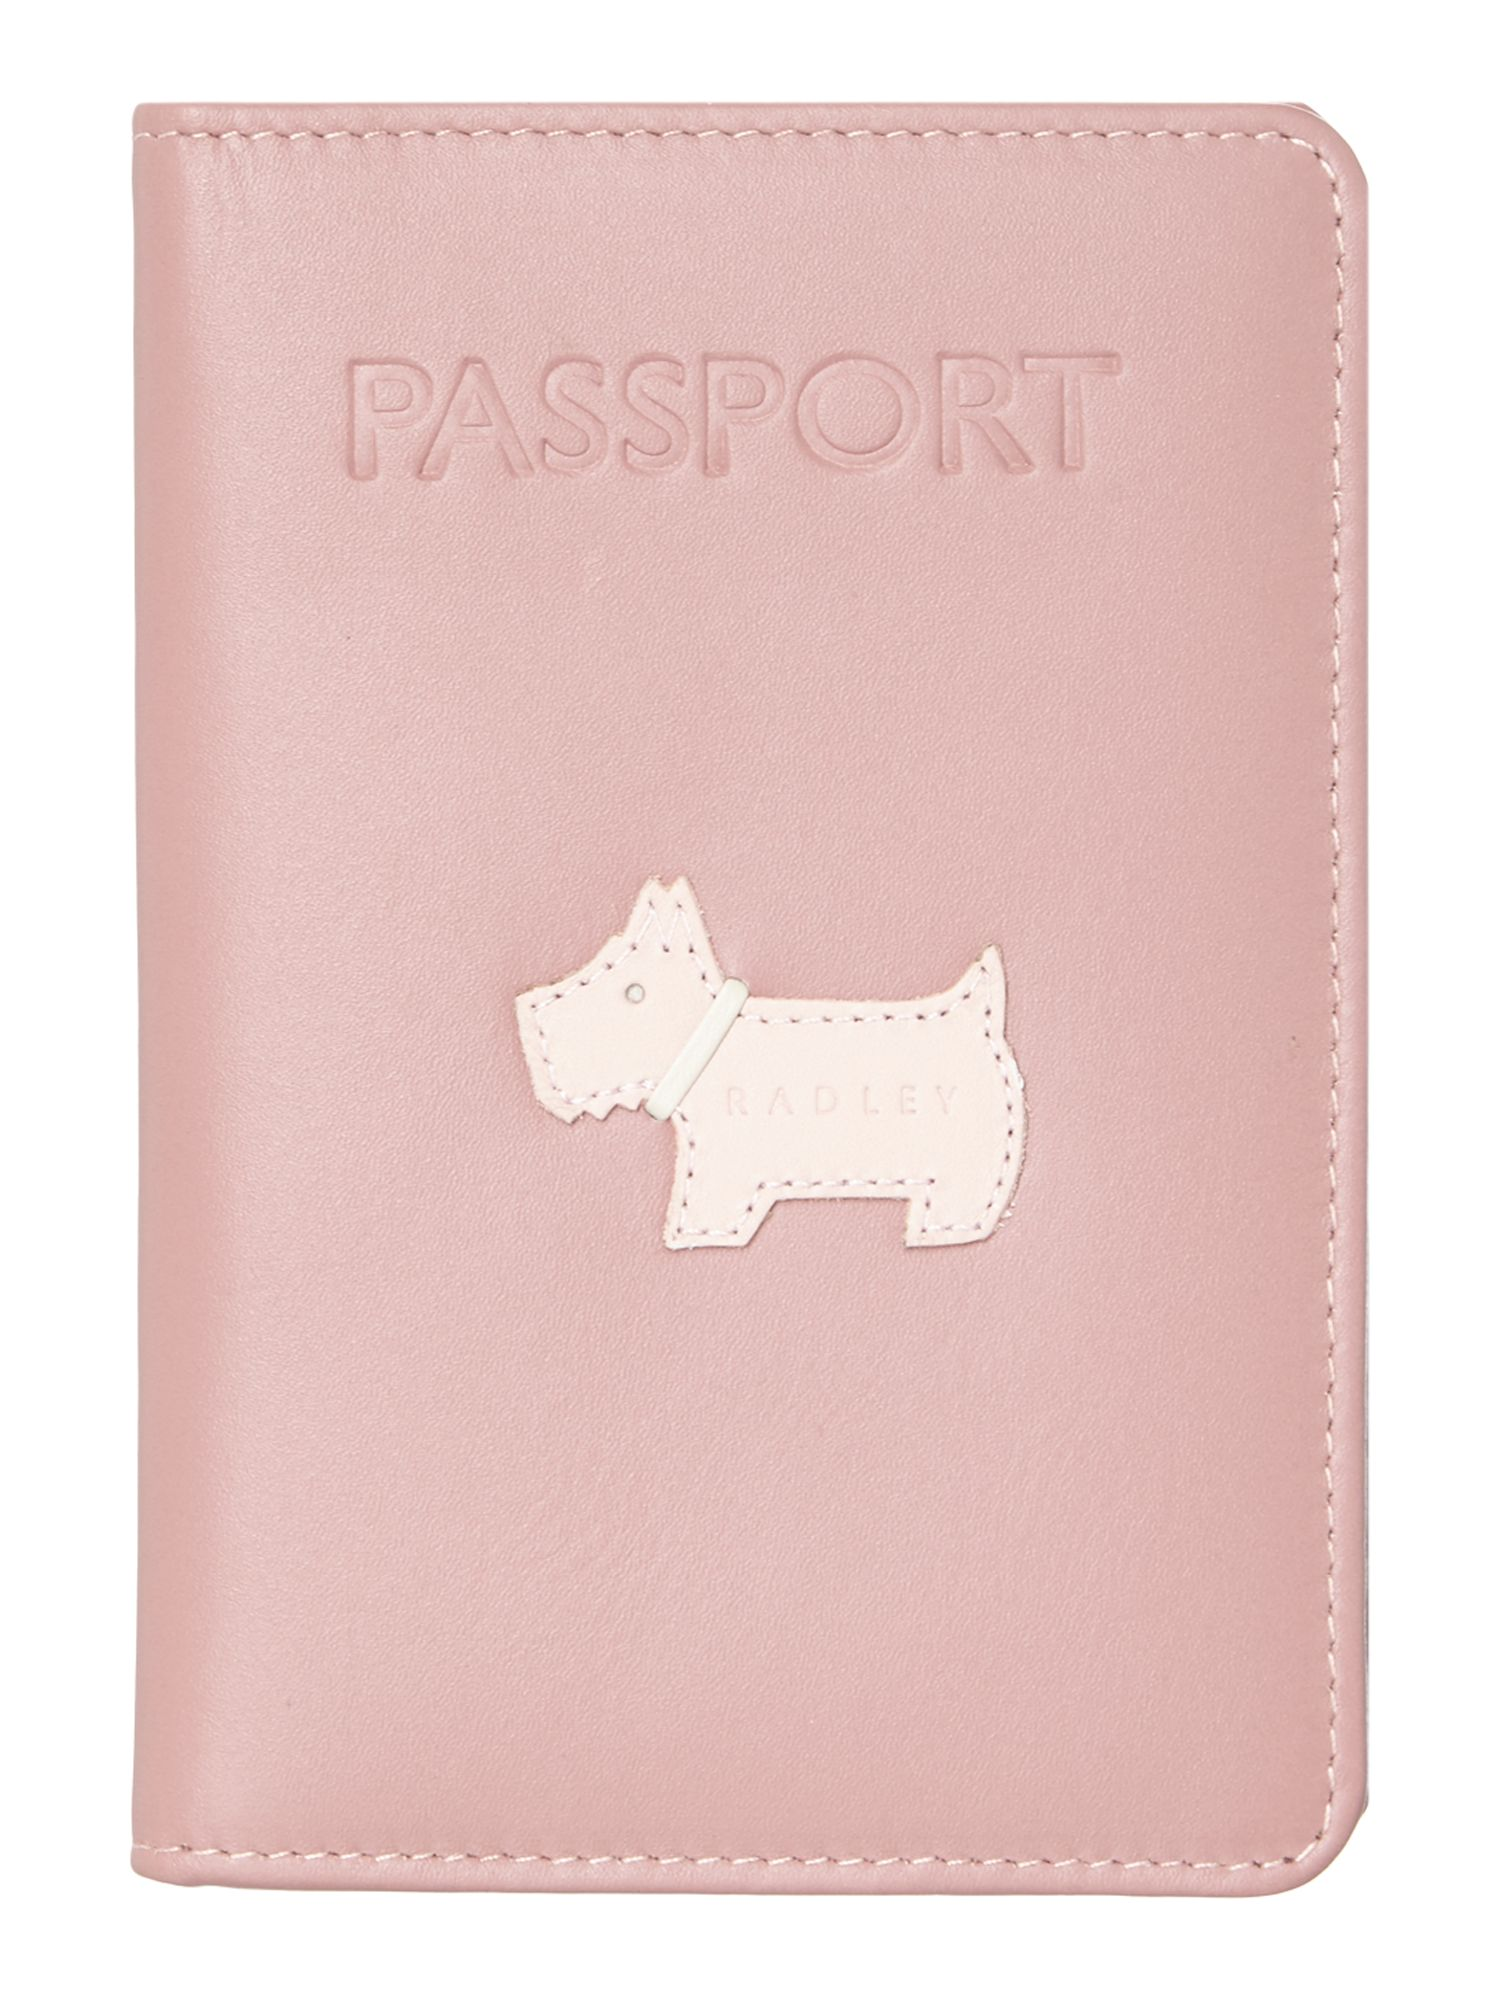 Heritage dog pink passport cover